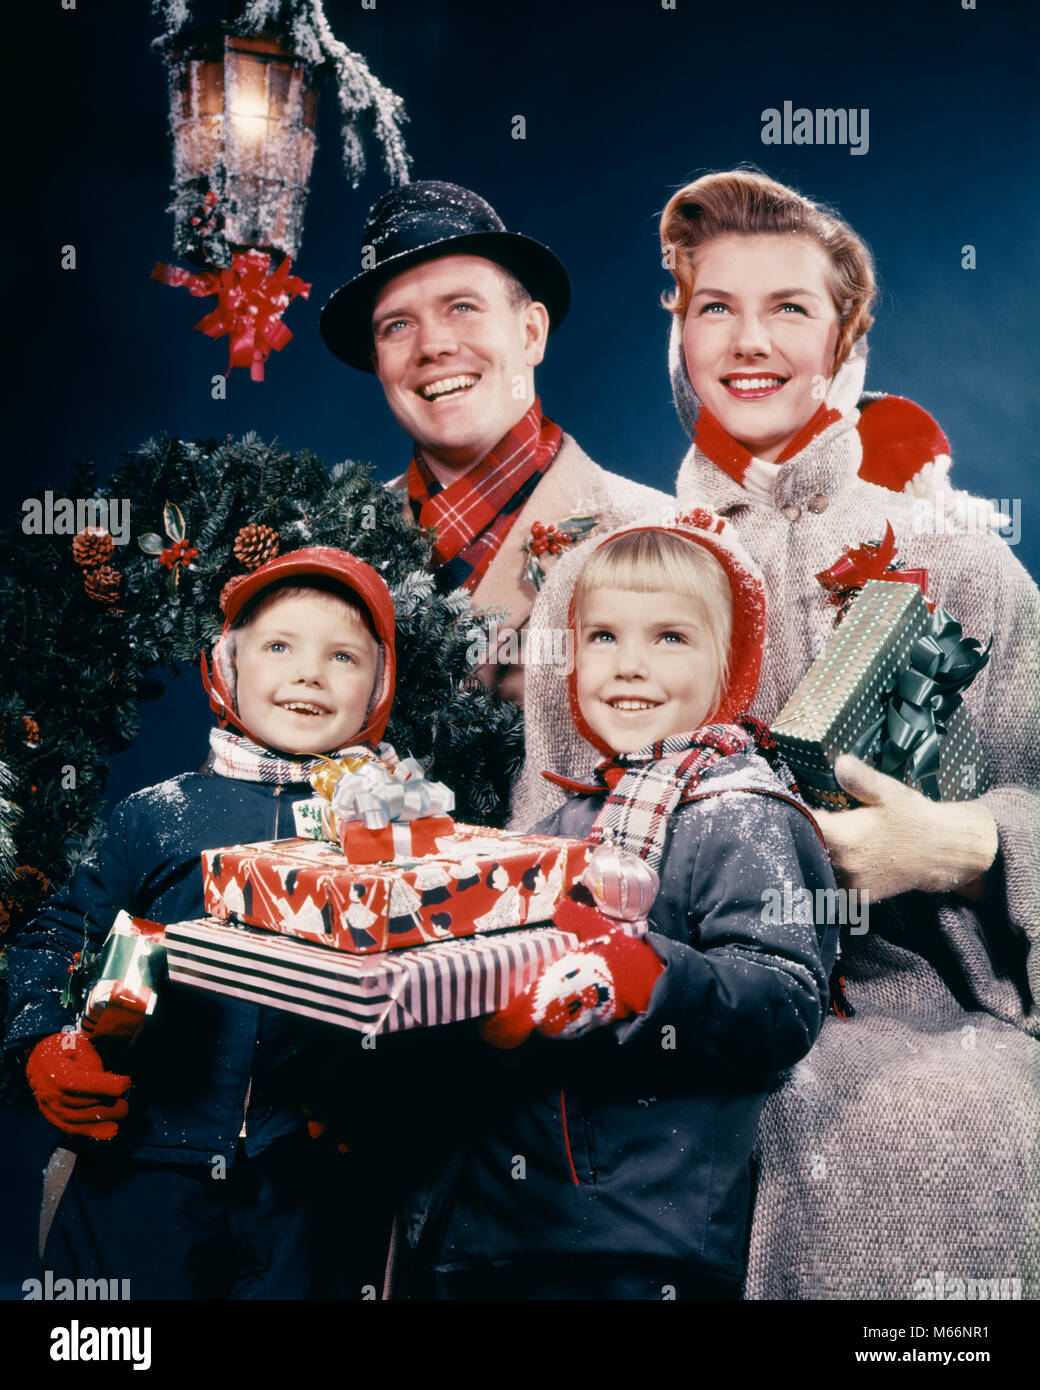 1950s FAMILY MAN WOMAN TWO KIDS HOLDING CHRISTMAS PRESENTS SMILING STANDING BENEATH LANTERN - kx2215 HAR001 HARS - Stock Image